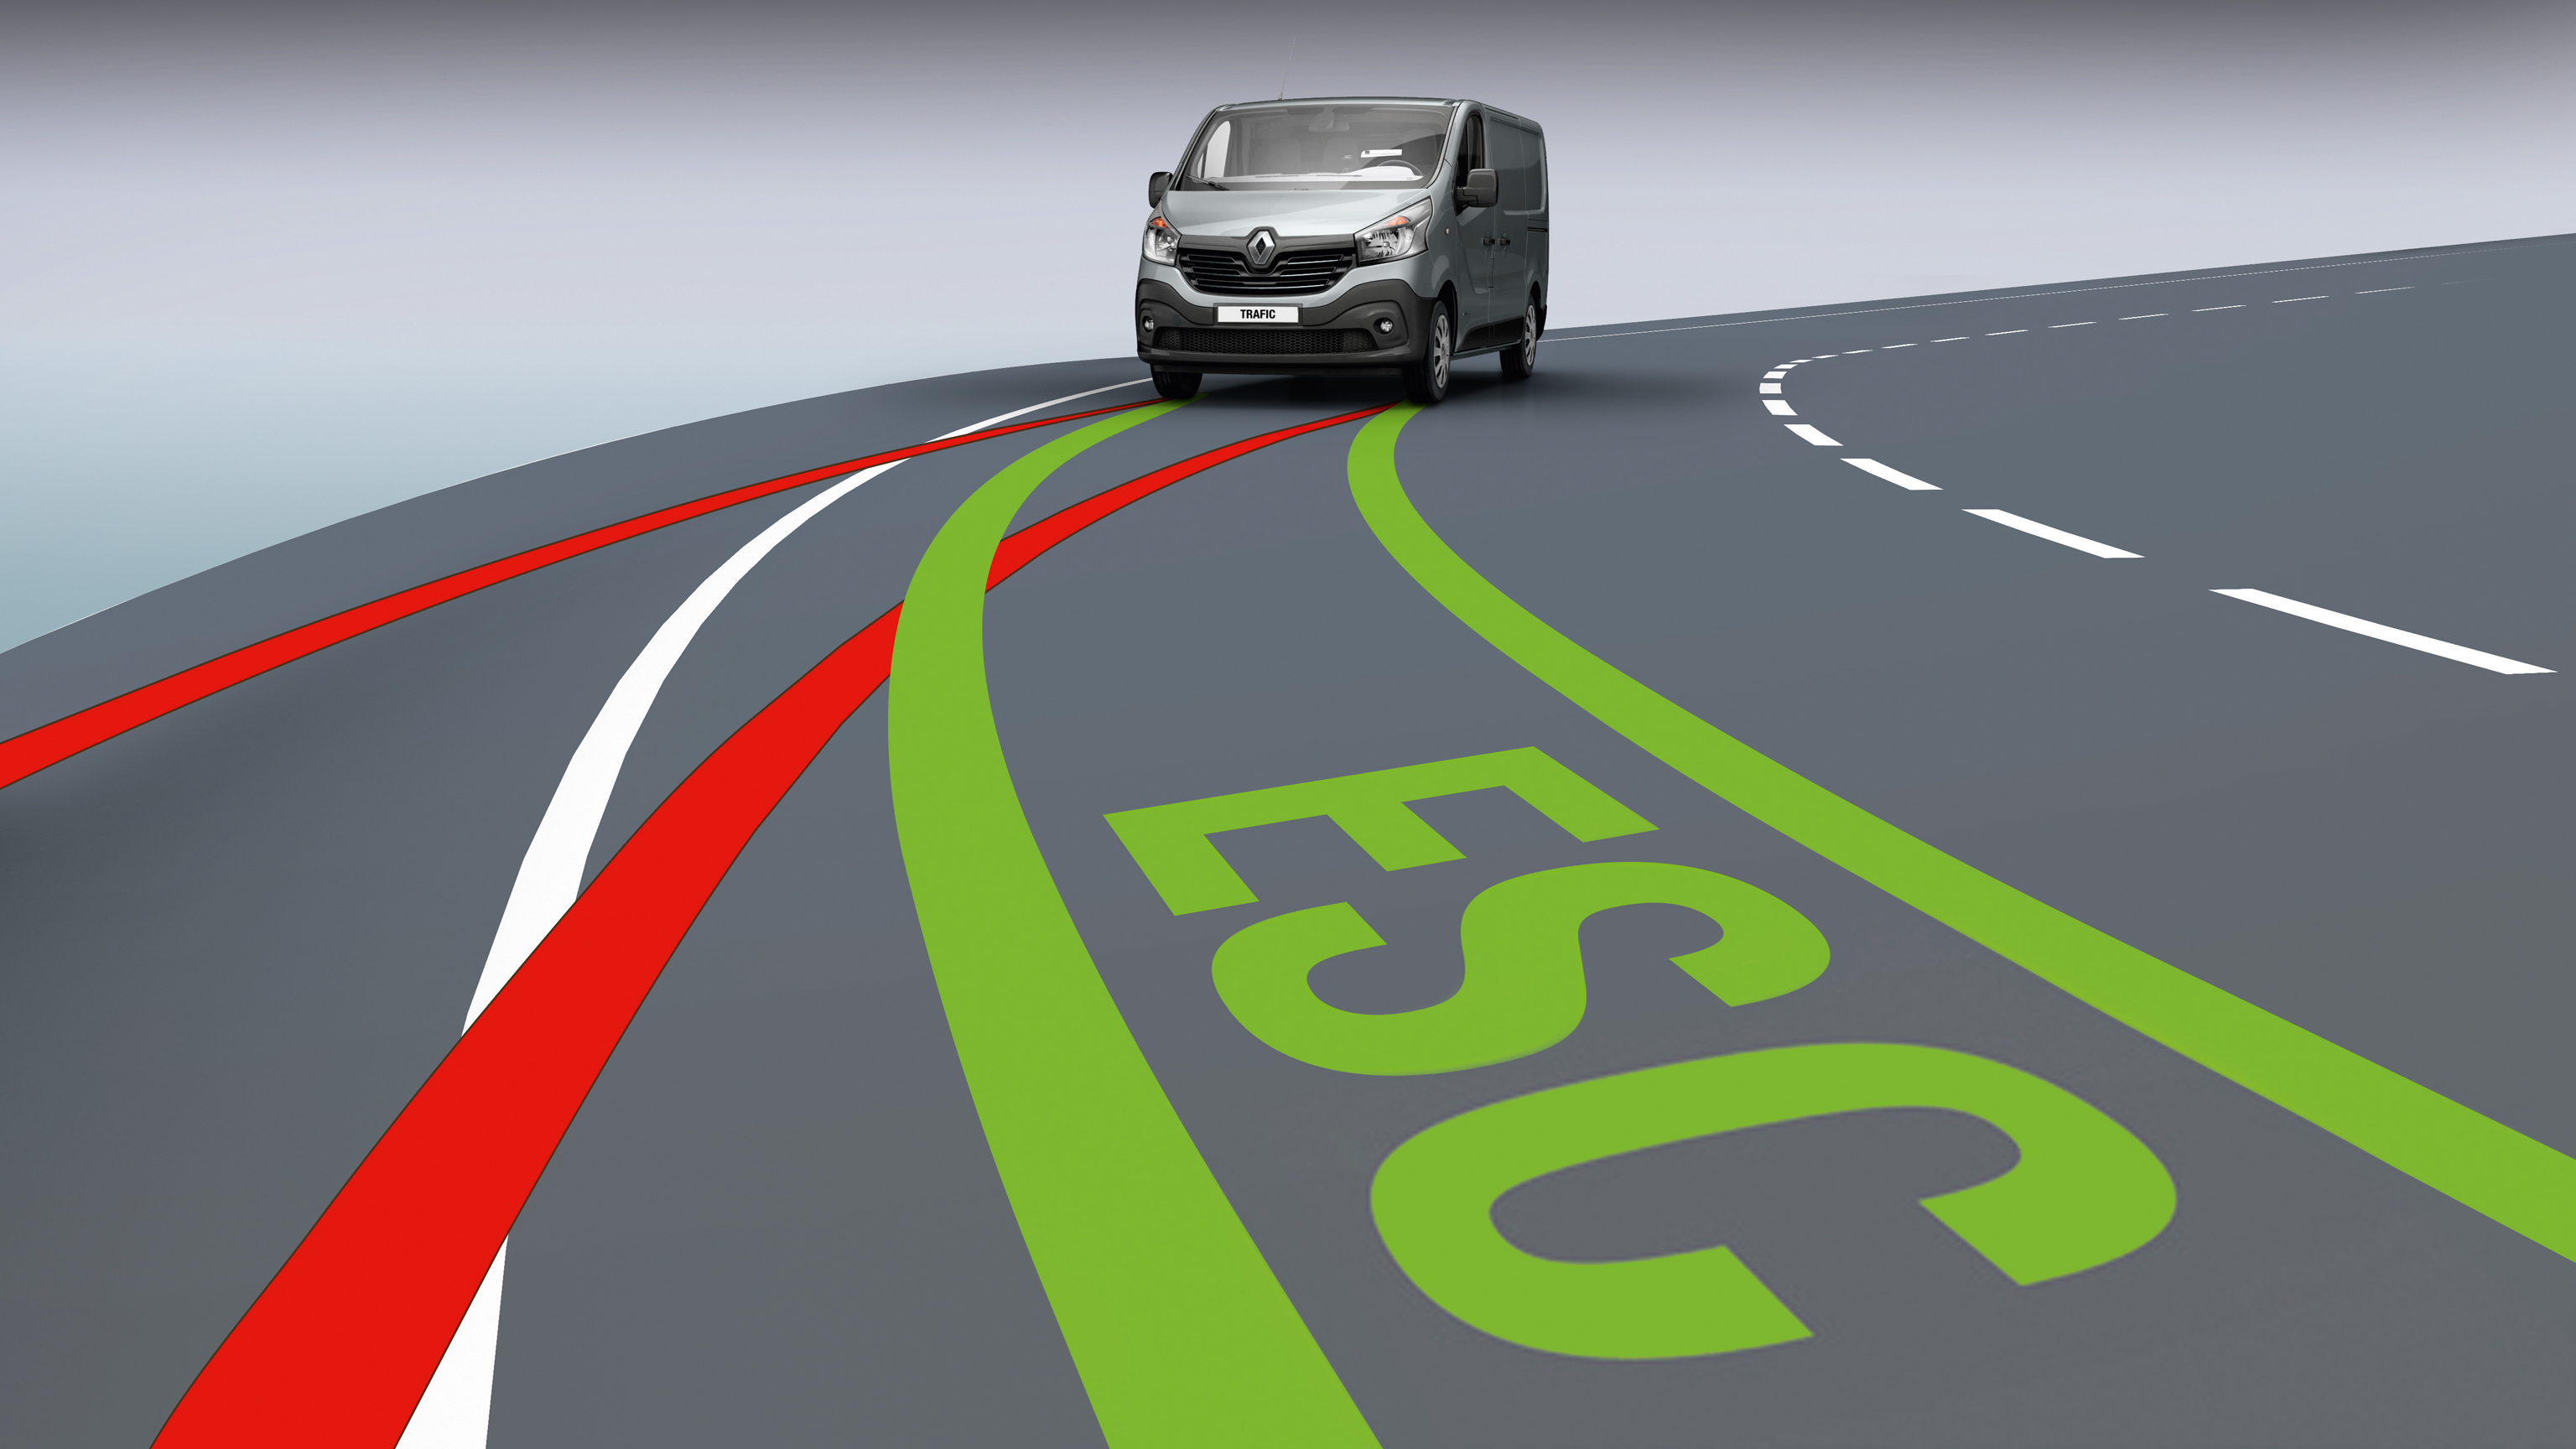 ESC (Electronic Stability Control) with Hill Start Assist and Grip Xtend